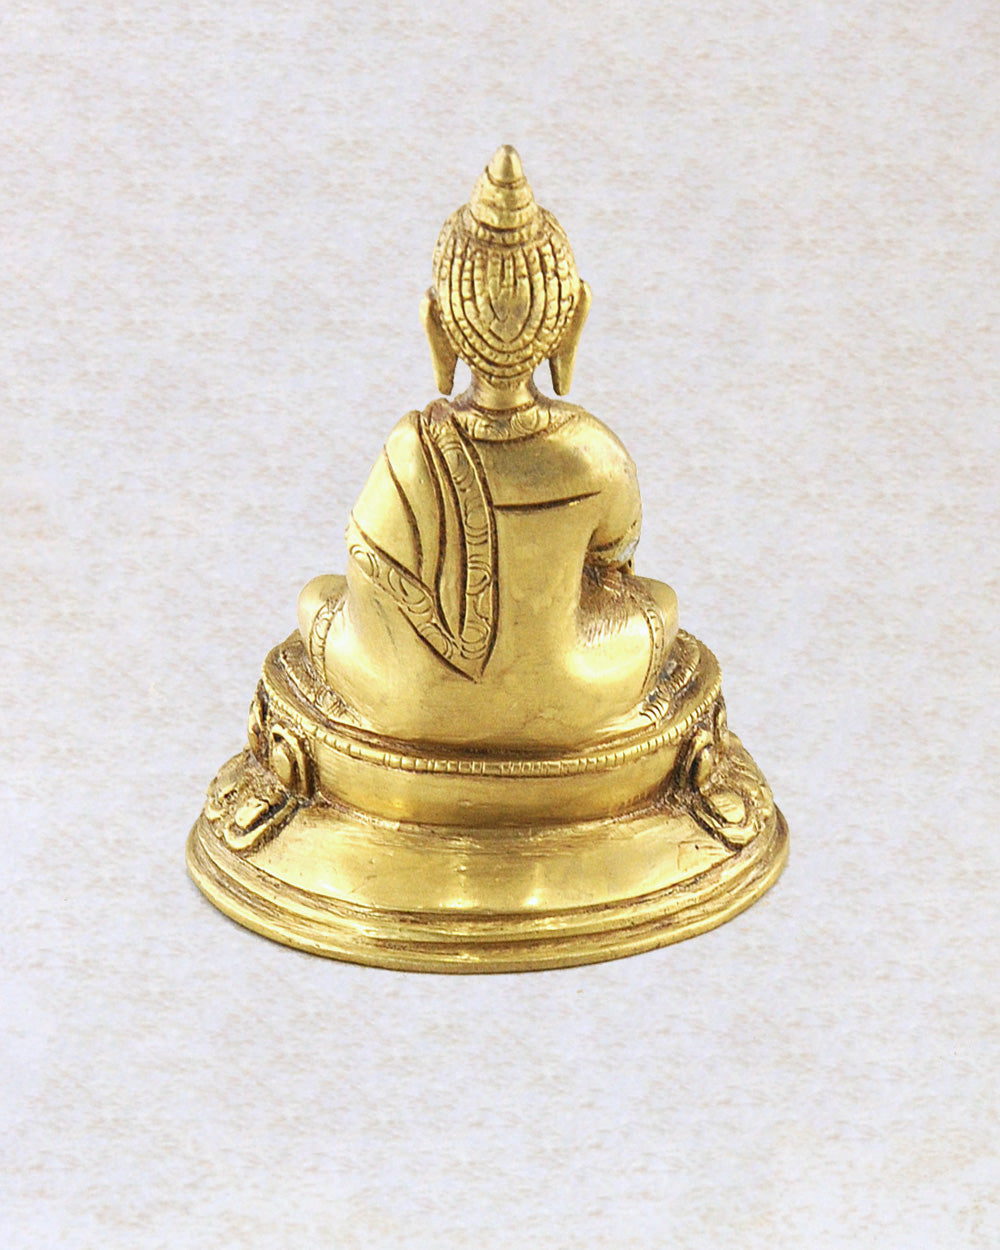 Mini Wish Giving Buddha Statue 2 inches